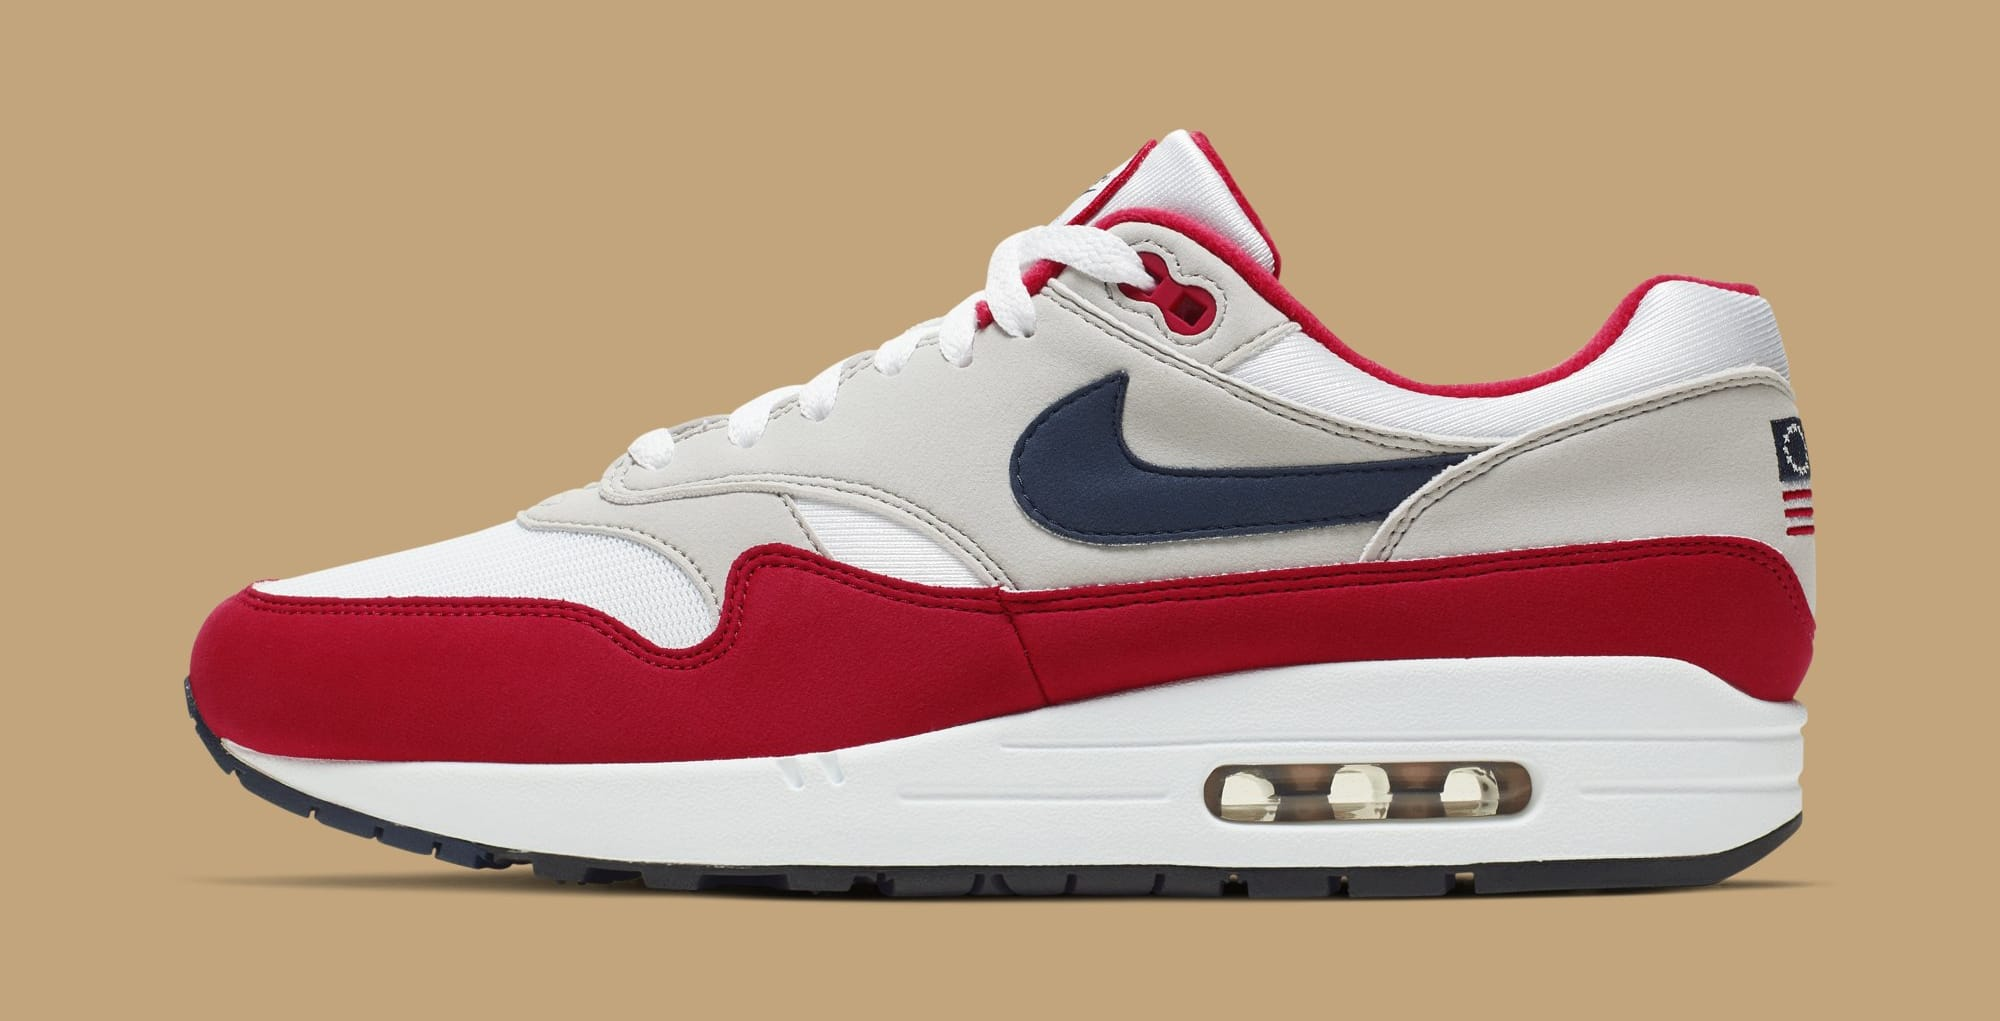 Nike Air Max 1 'Fourth of July' CJ4283 100 Release Date